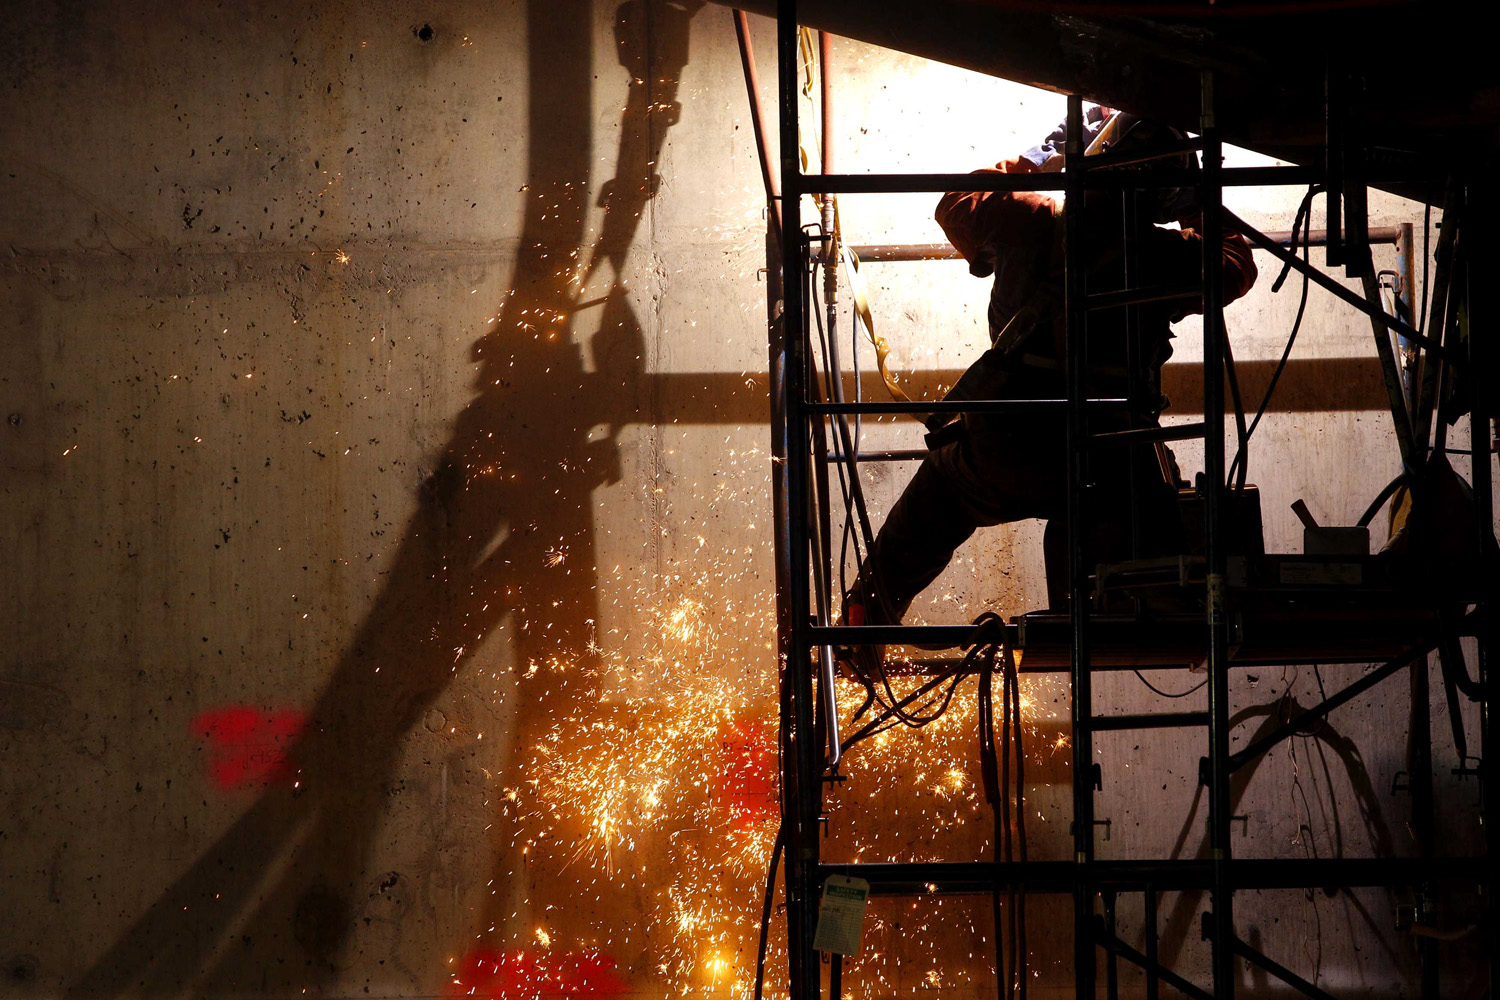 July 28, 2011. A welder works below ground level as work continues on the National September 11 Memorial and Museum at the World Trade Center site in New York. The memorial was dedicated on September 11, 2011, the 10th anniversary of the attacks on the World Trade Center.